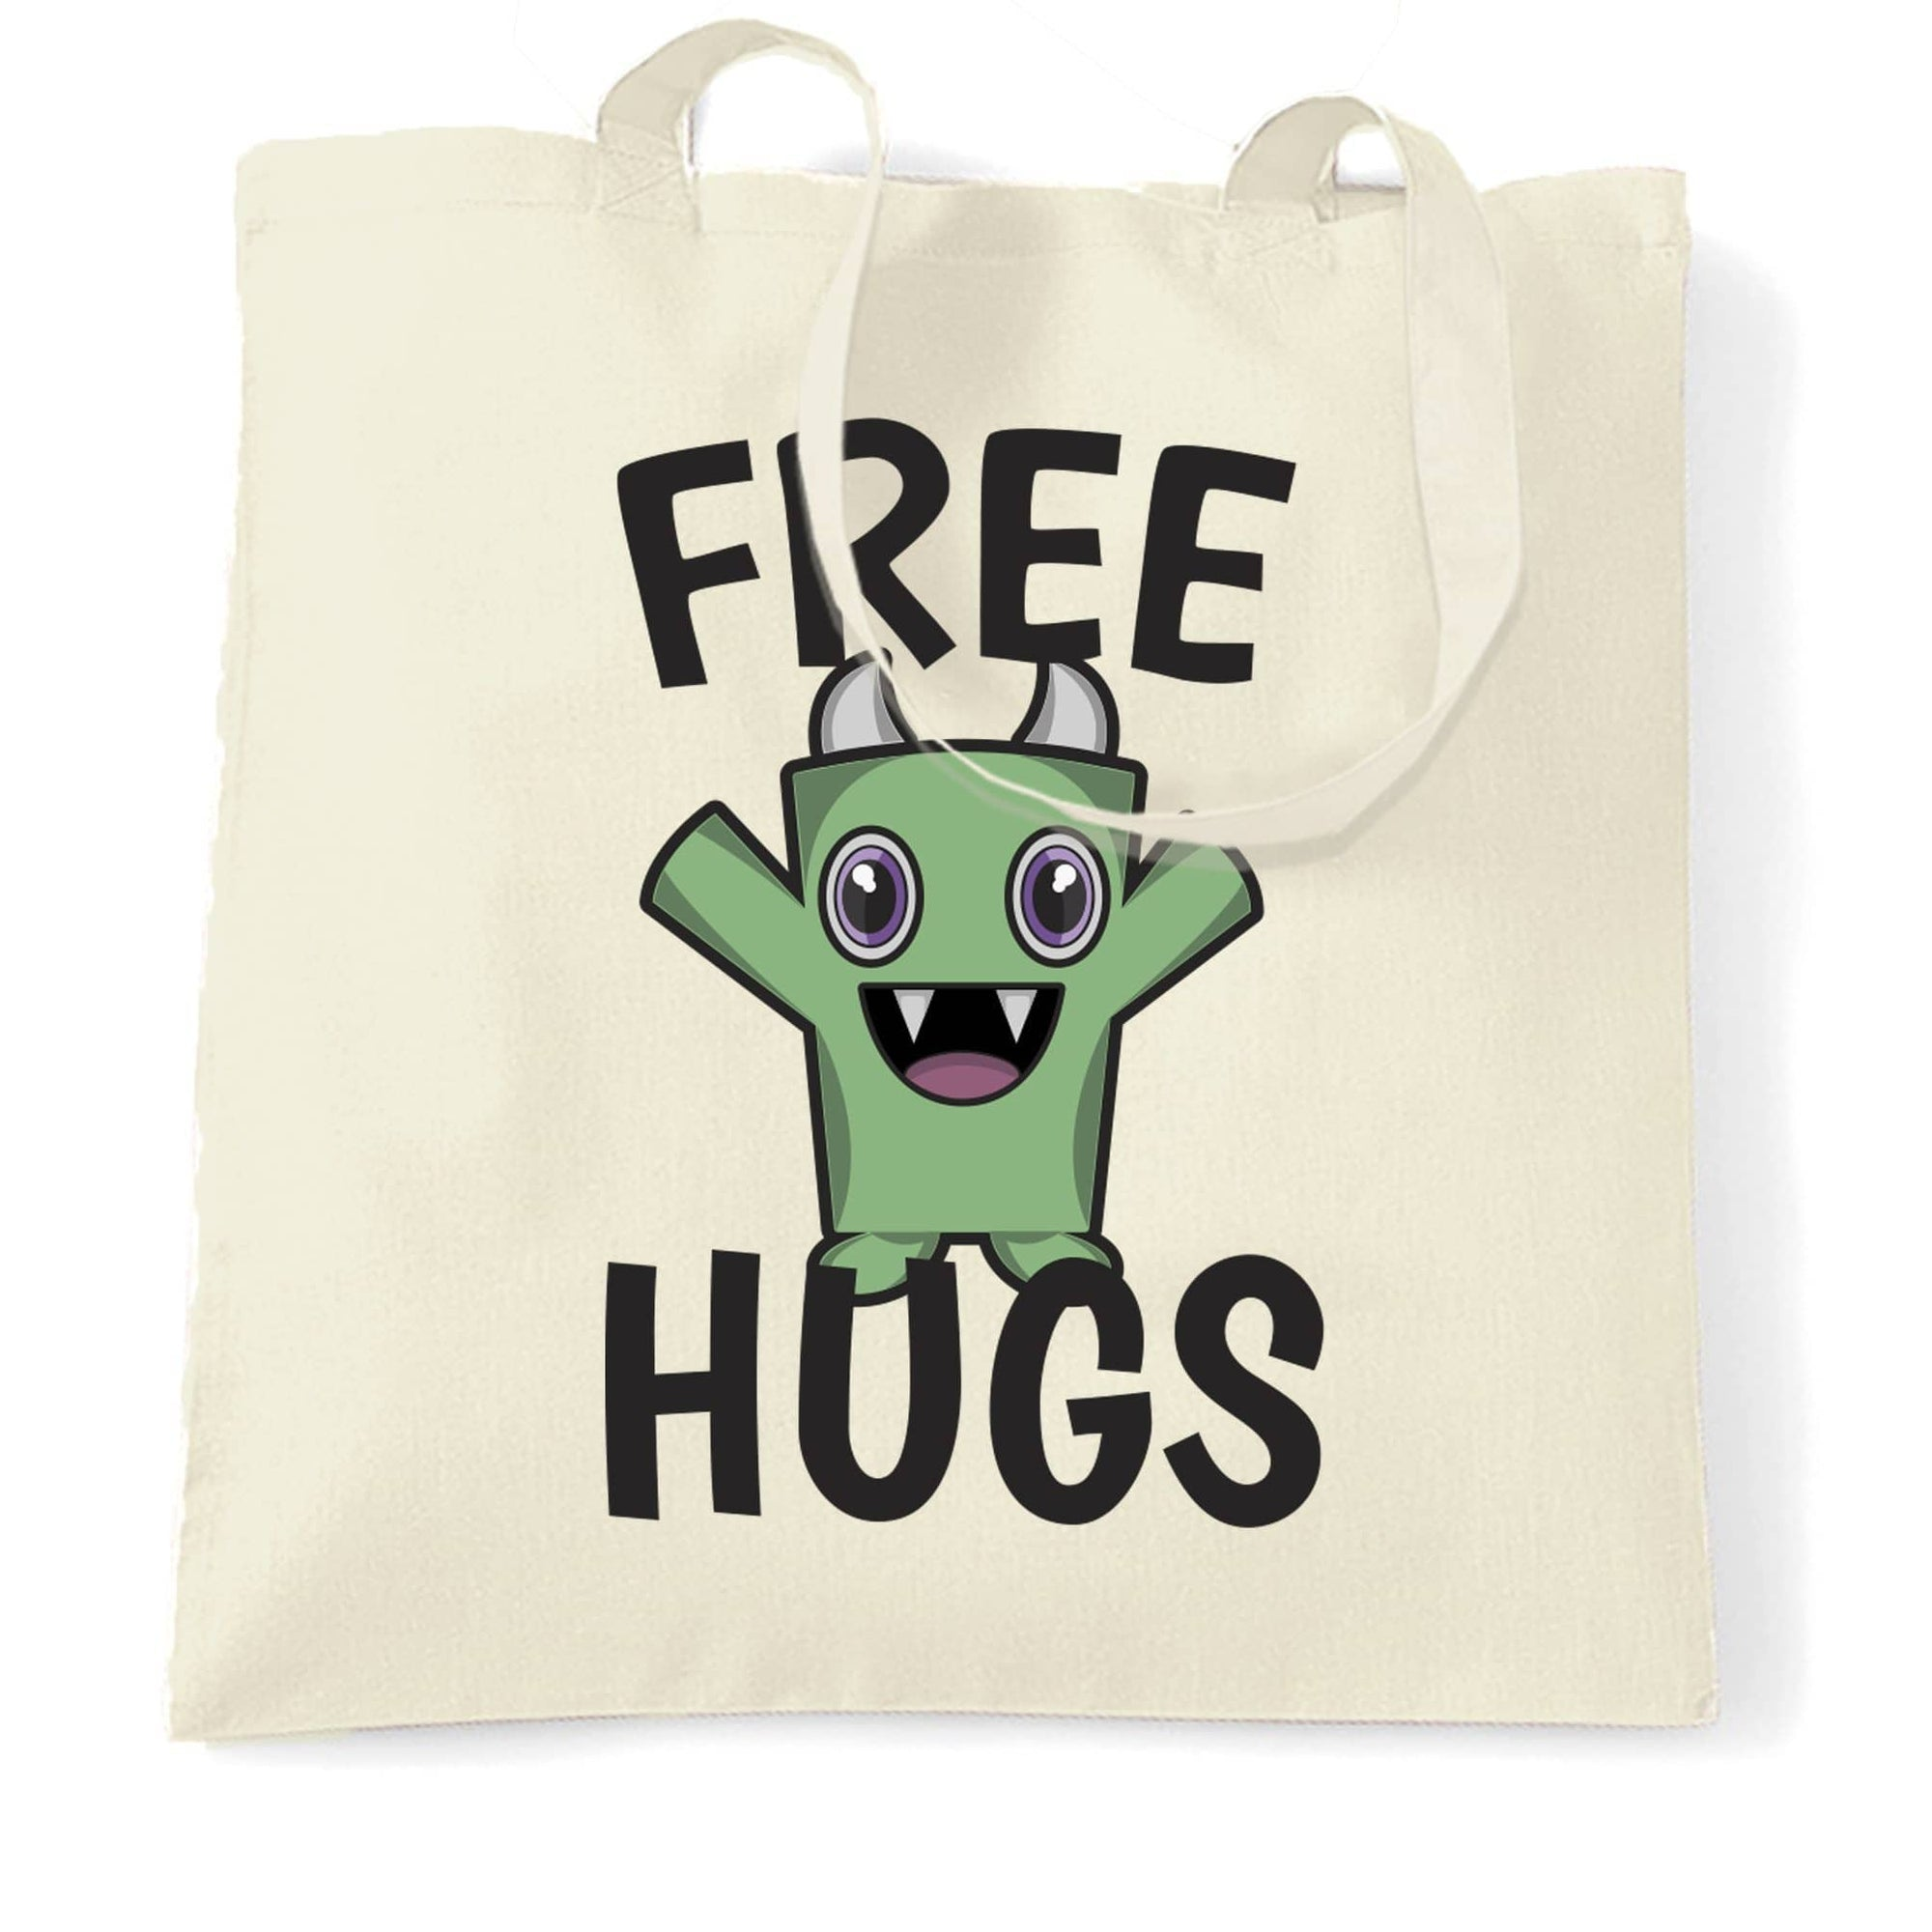 Festival Tote Bag Free Hugs Slogan With Cute Monster